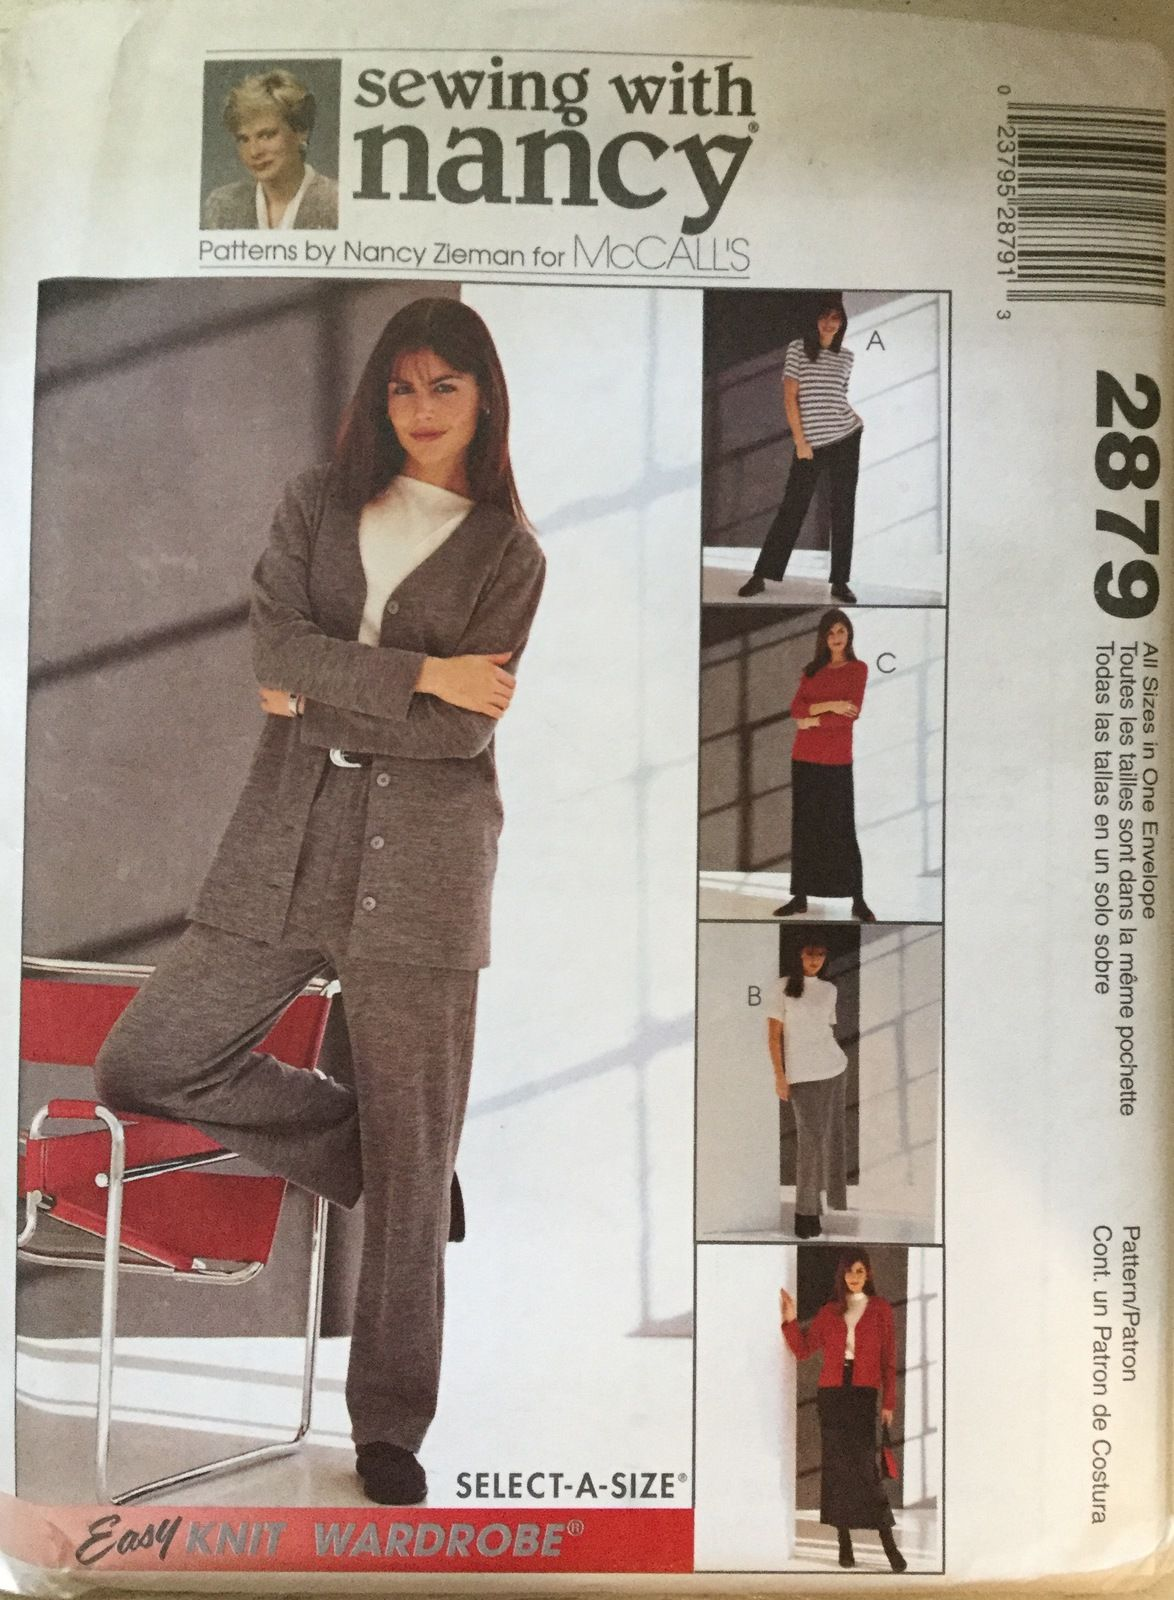 Mccalls 2879 misses jacket tops pants skirt by sewing with mccalls 2879 misses jacket tops pants skirt by sewing with nancy size 8 22 jeuxipadfo Image collections